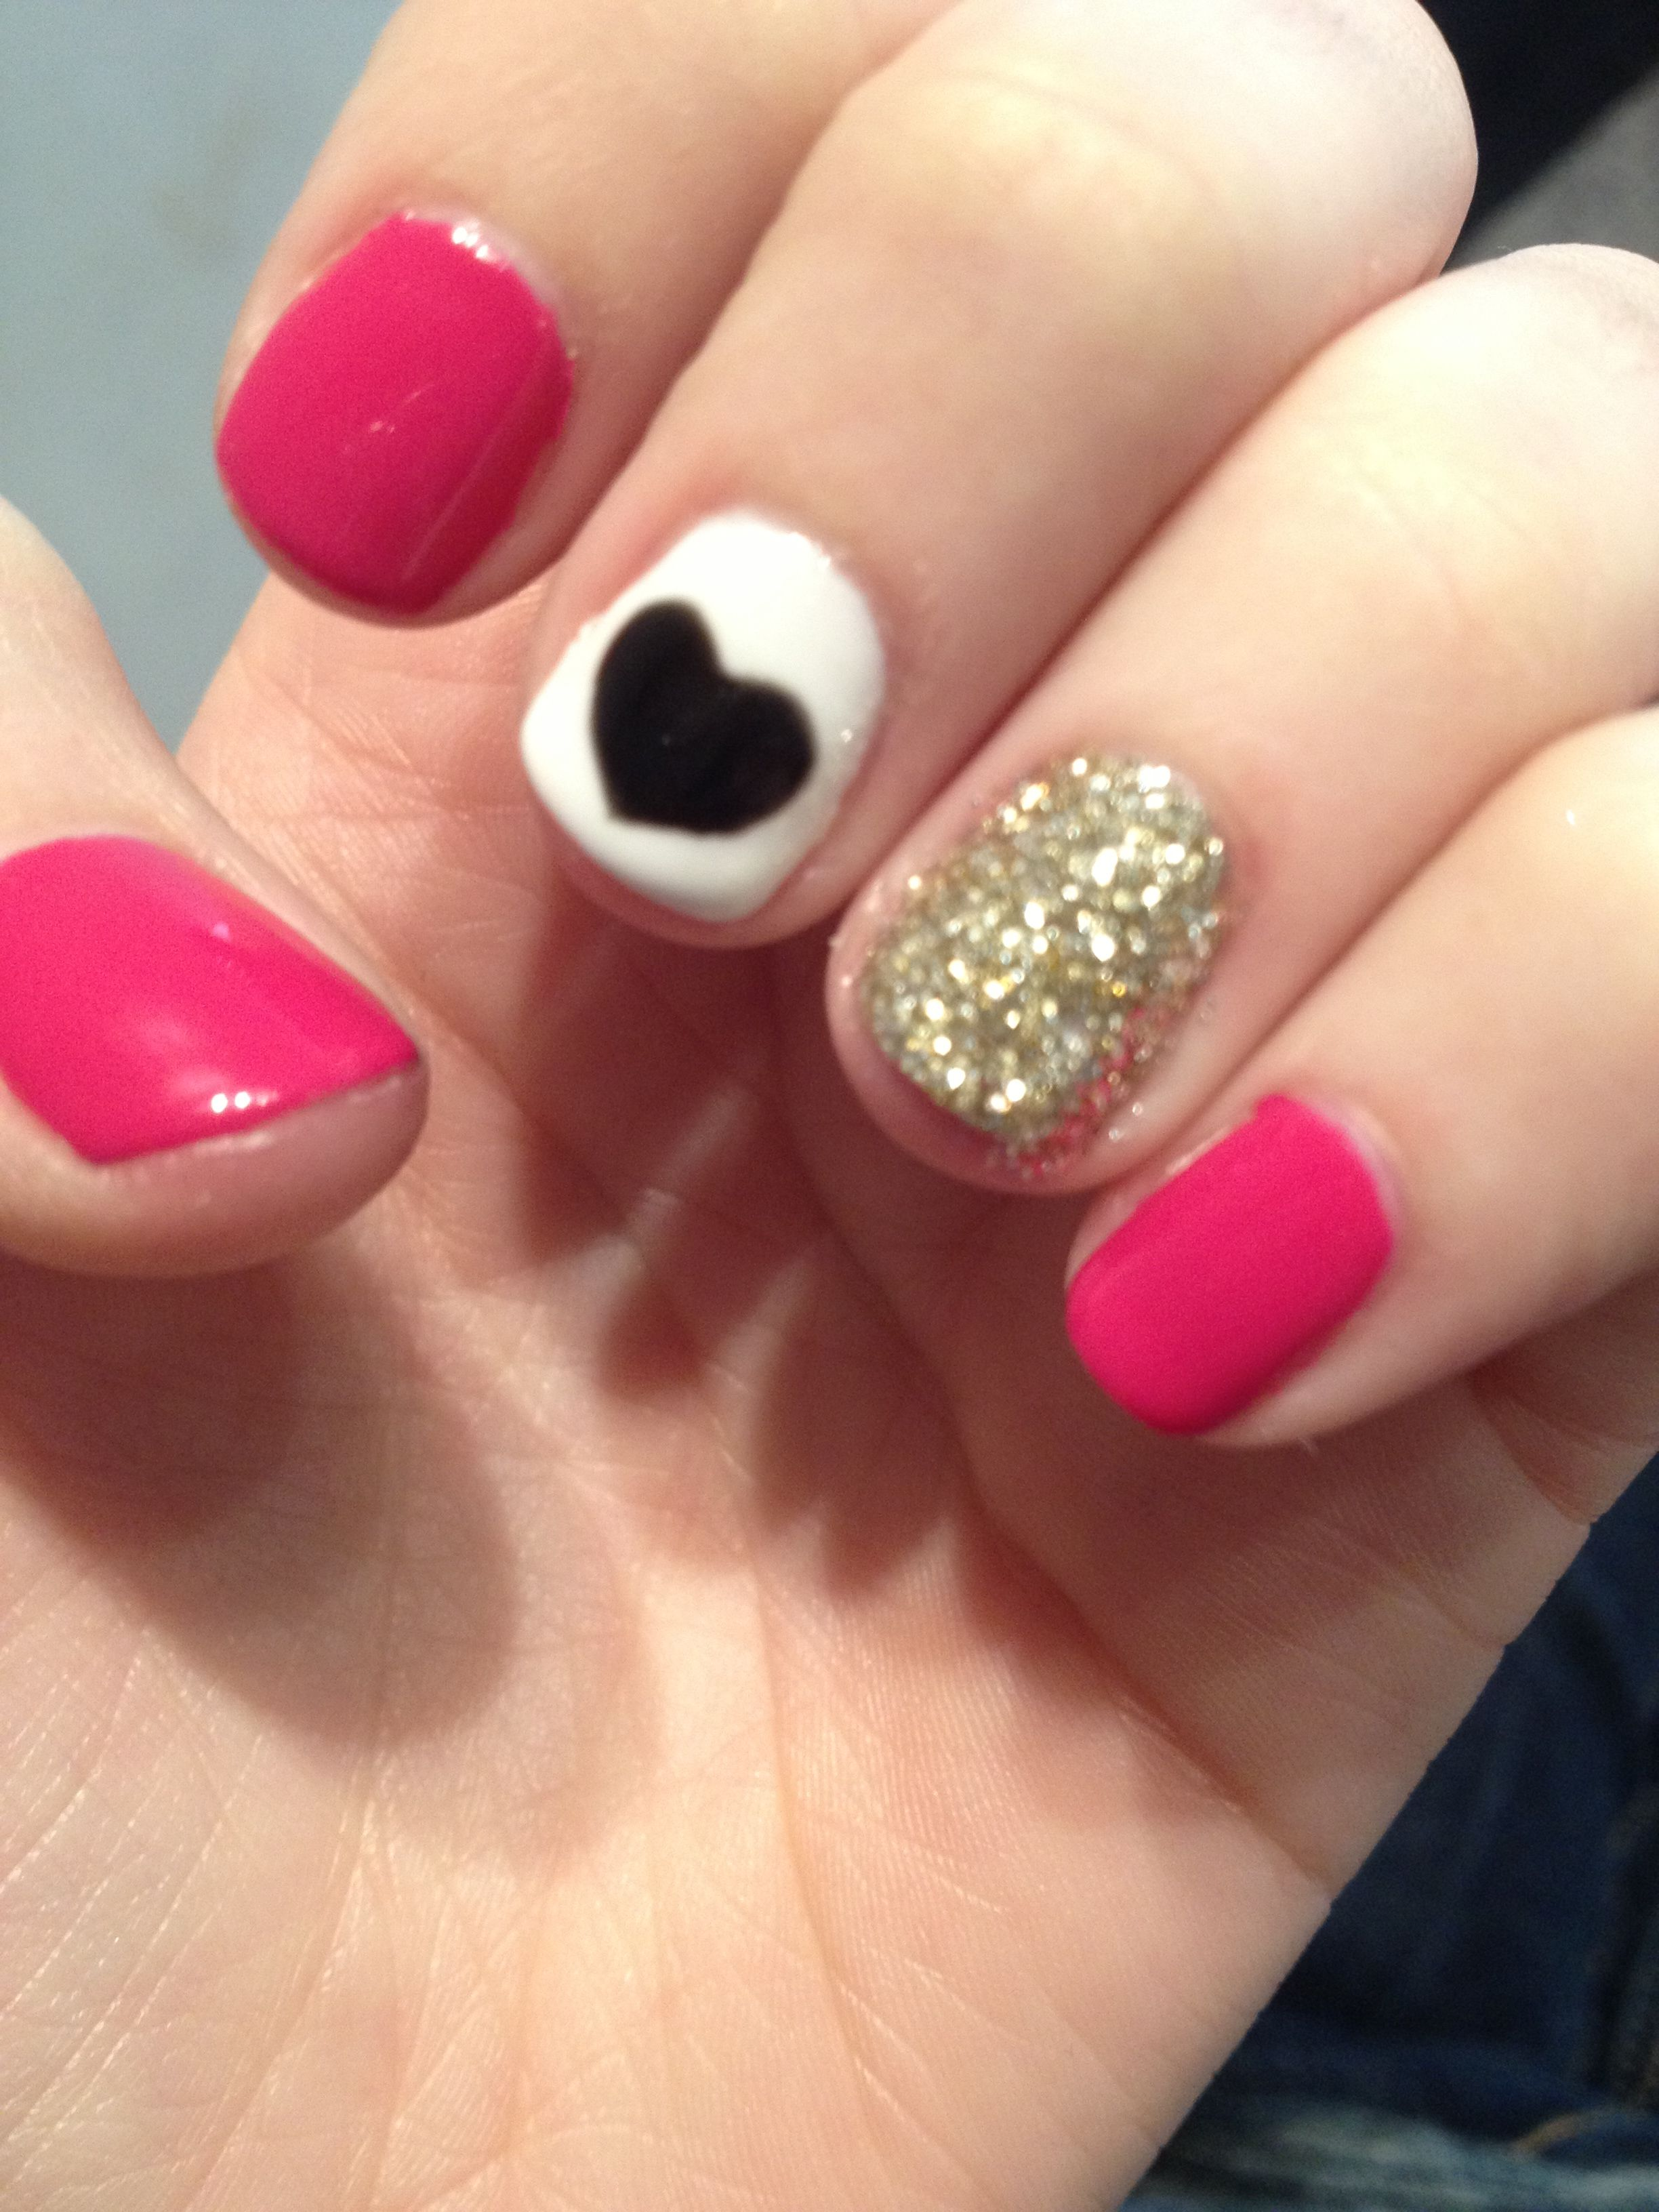 Super easy nail art for short nails so cute nails - Cute nail art designs to do at home ...